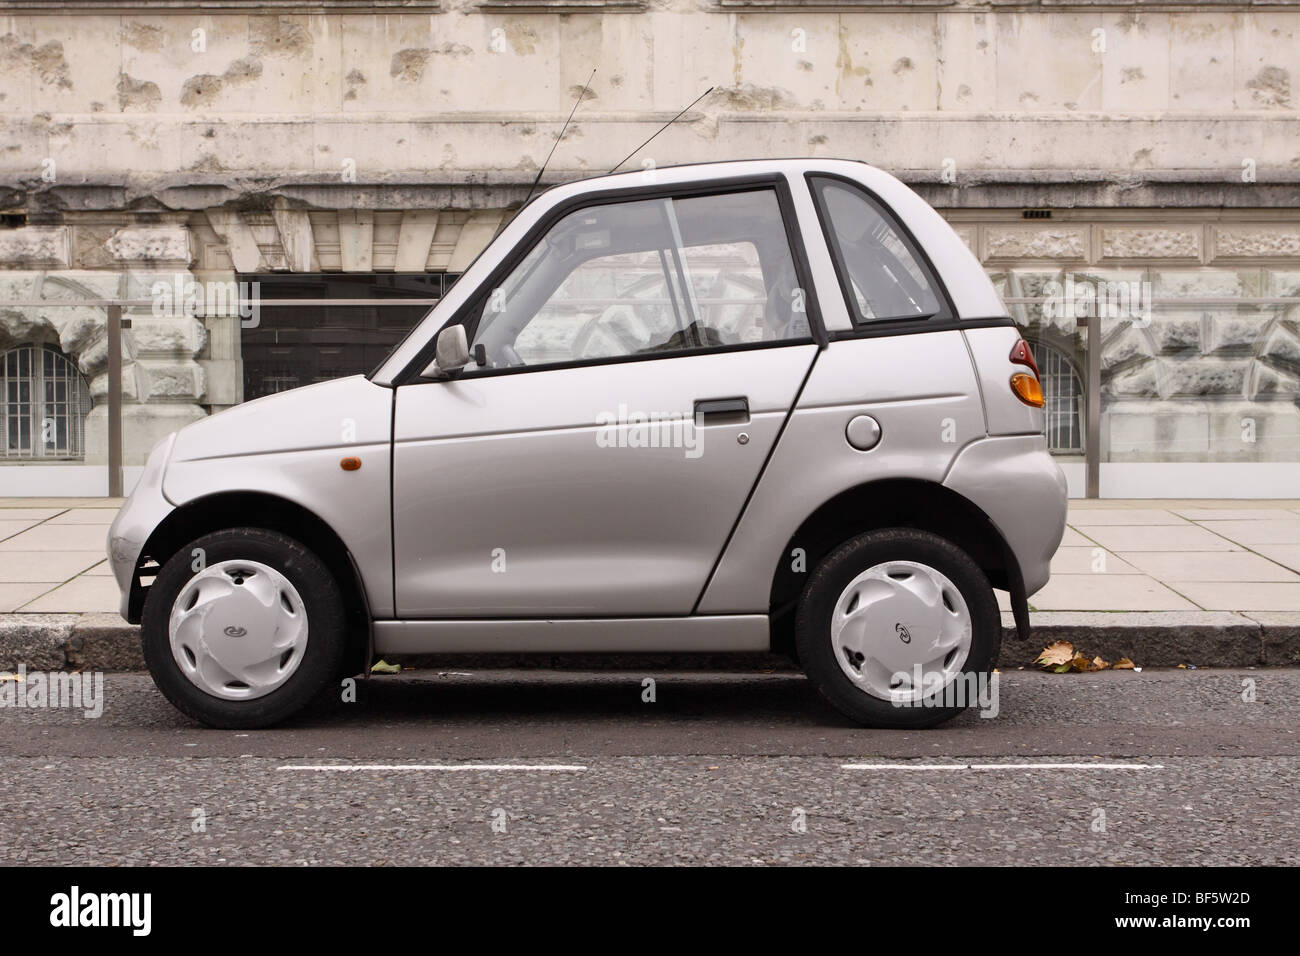 G Wiz G Whiz Electric Car Parked In Westminster London Stock Photo